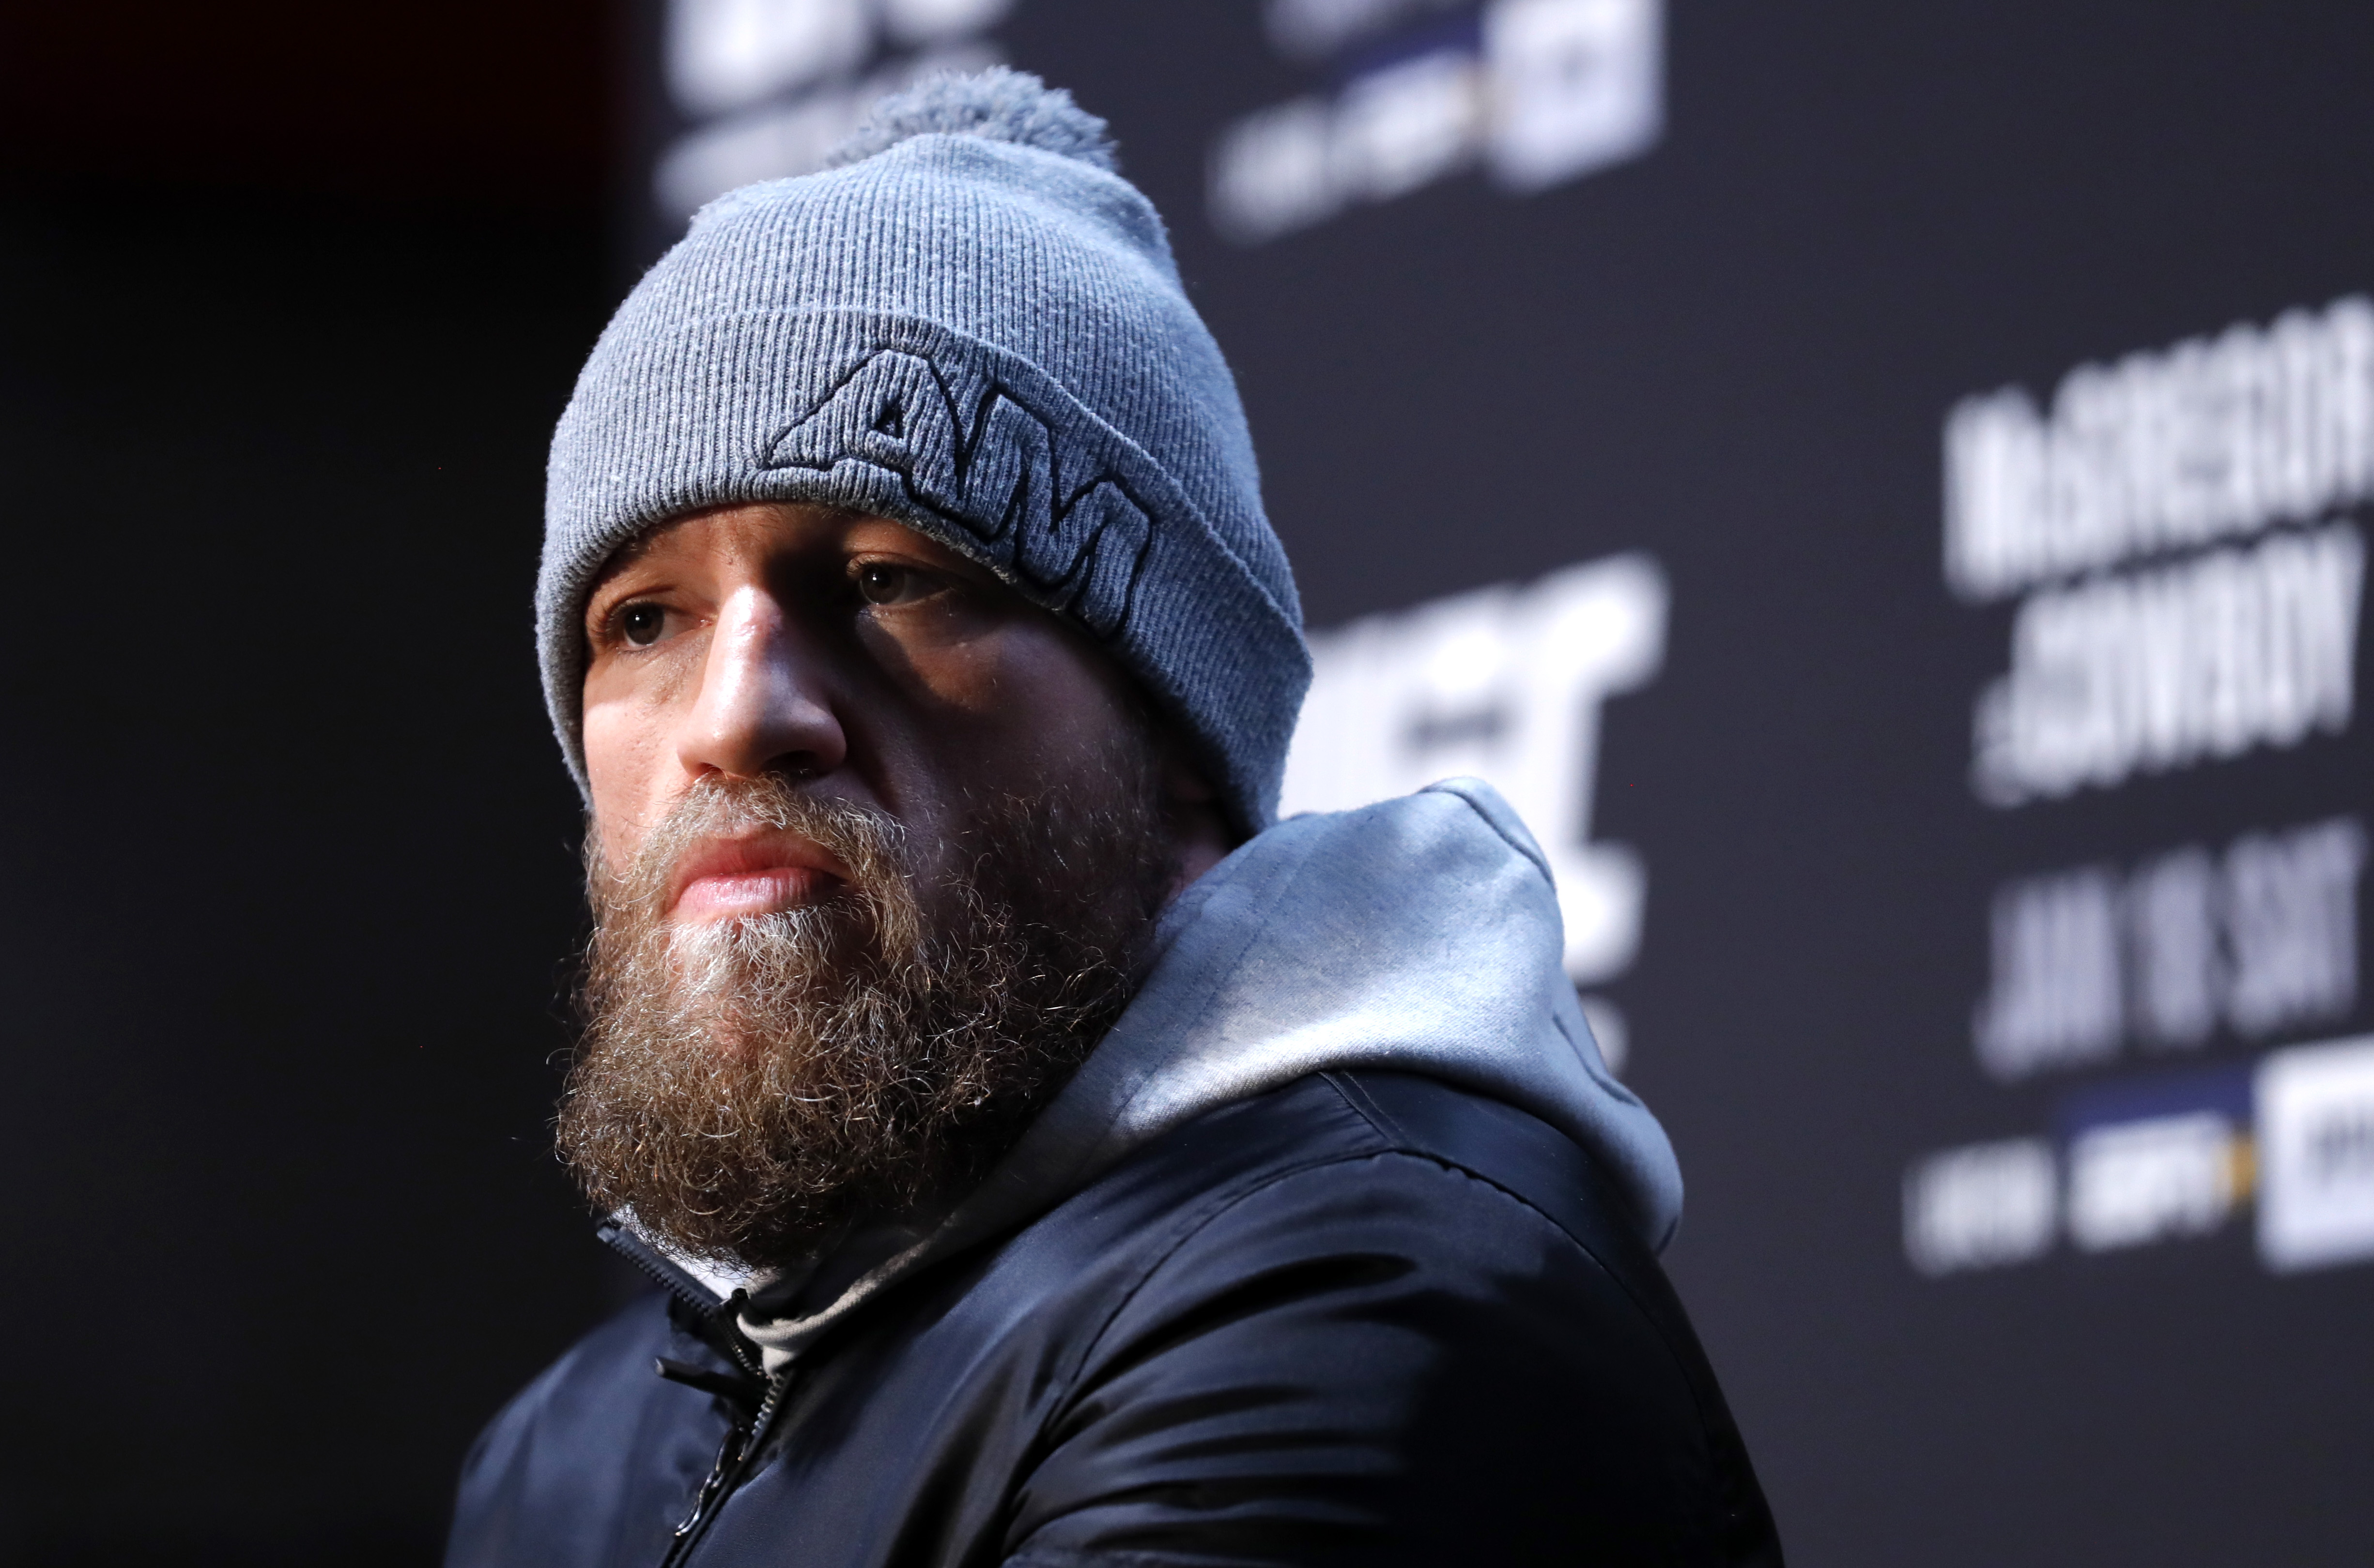 Conor McGregor is making his return to the octagon tonight for UFC 246